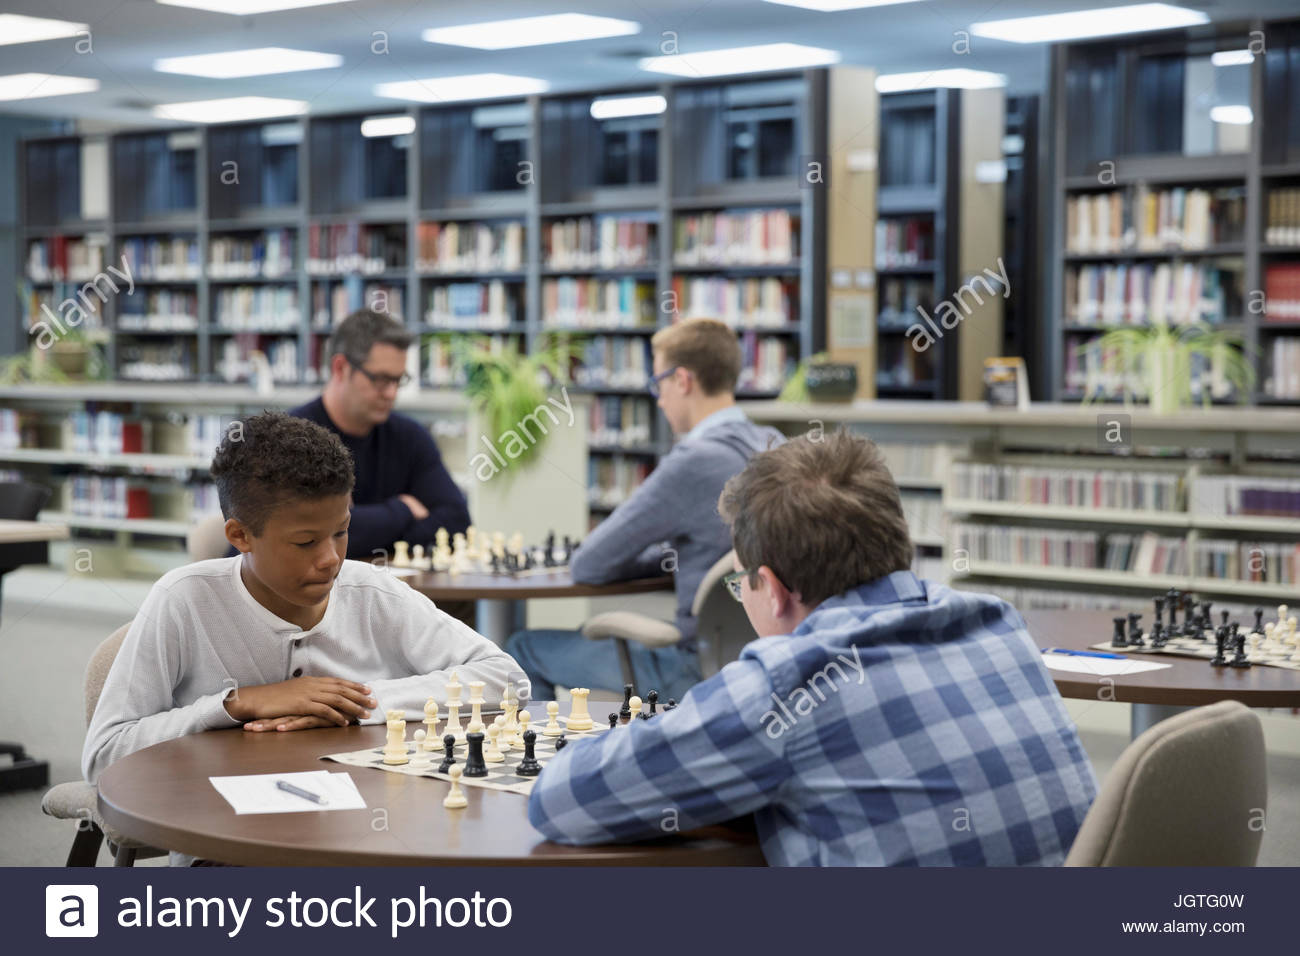 Middle school boy students playing chess in chess club - Stock Image